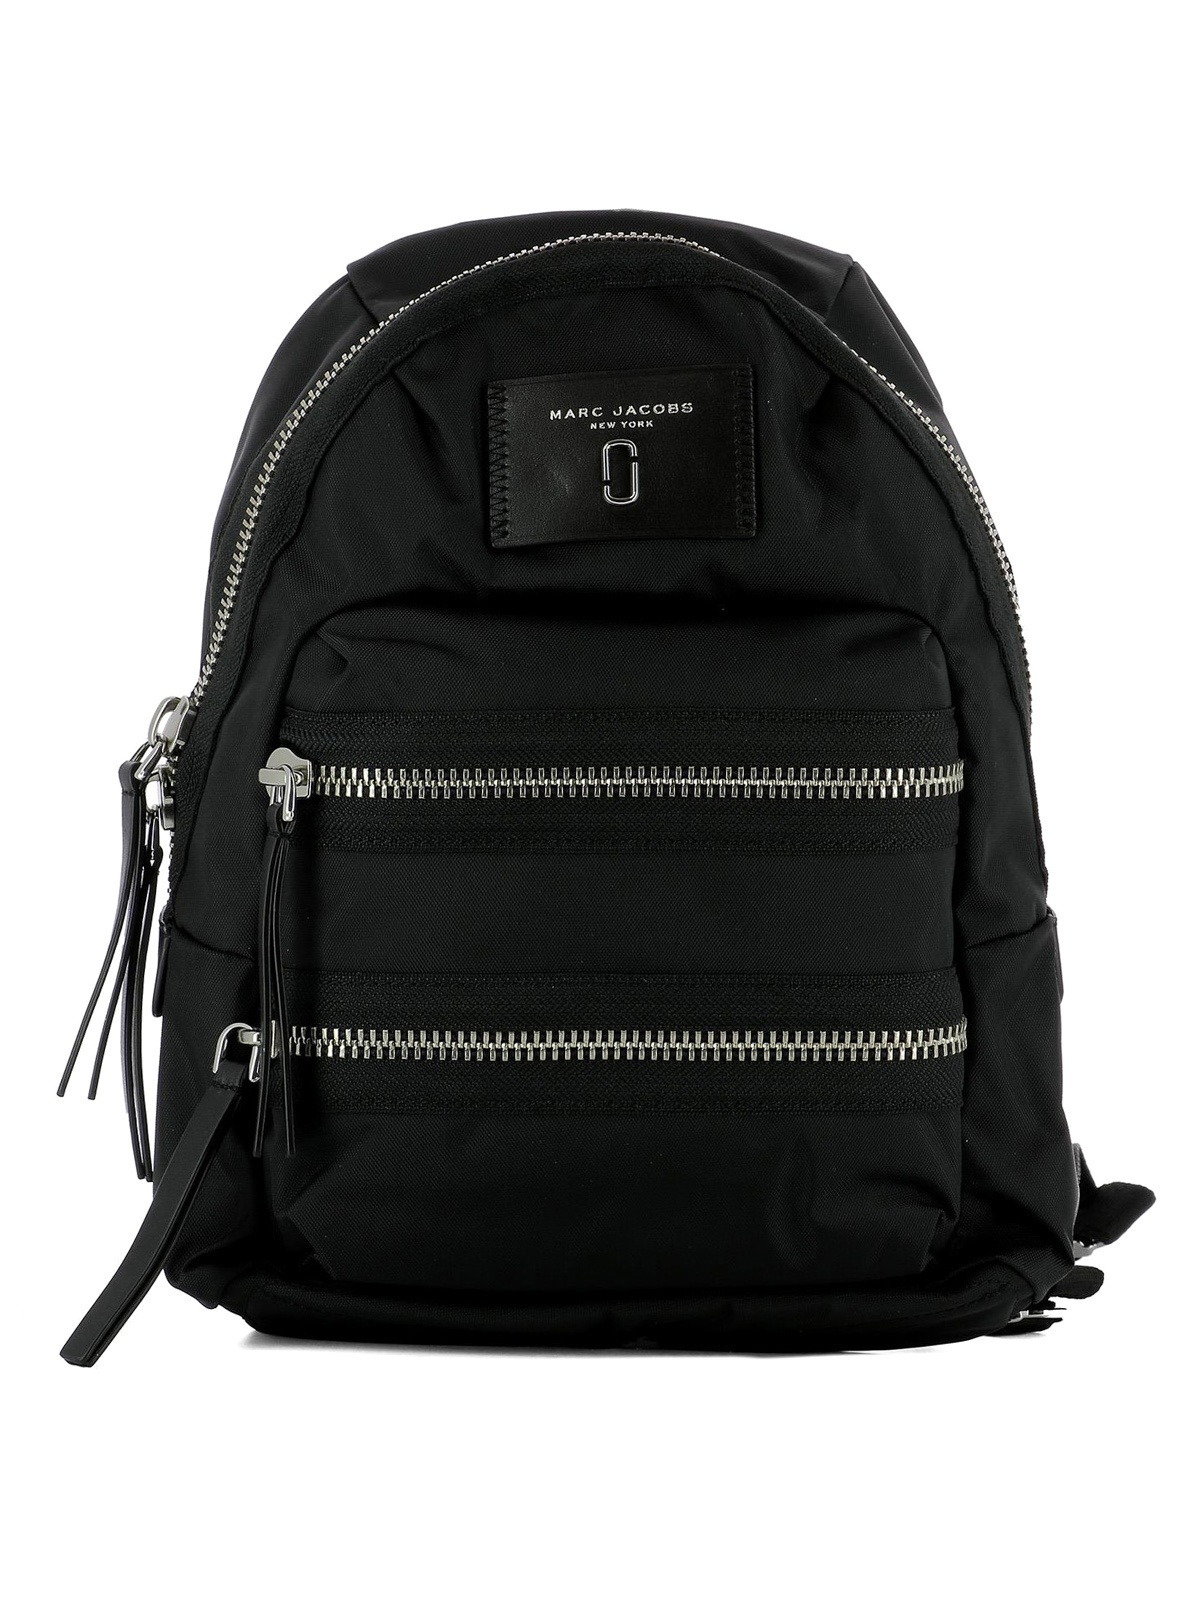 biker style small nylon backpack by marc jacobs. Black Bedroom Furniture Sets. Home Design Ideas